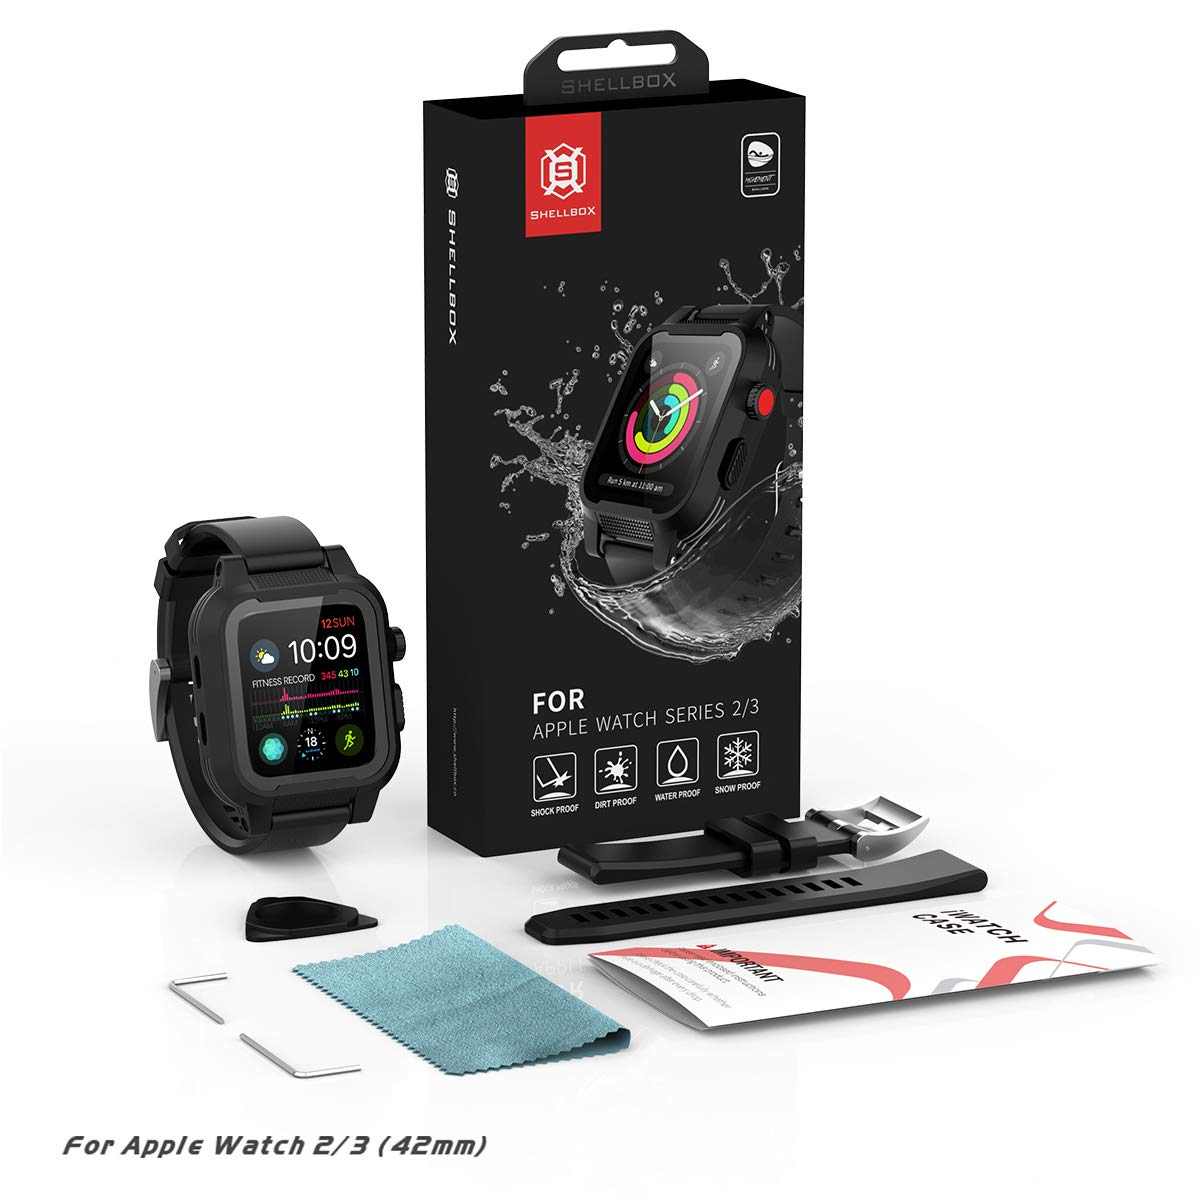 [Waterproof Case for 42mm] AIUERU IP68 Waterproof Watch Case, Full Sealed waterproof iWatch Case with Resilient Shock Absorption for 42mm iWatch Series 3 and 2, Package with 2 Soft Silicone Watch Band by ShellBox (Image #8)